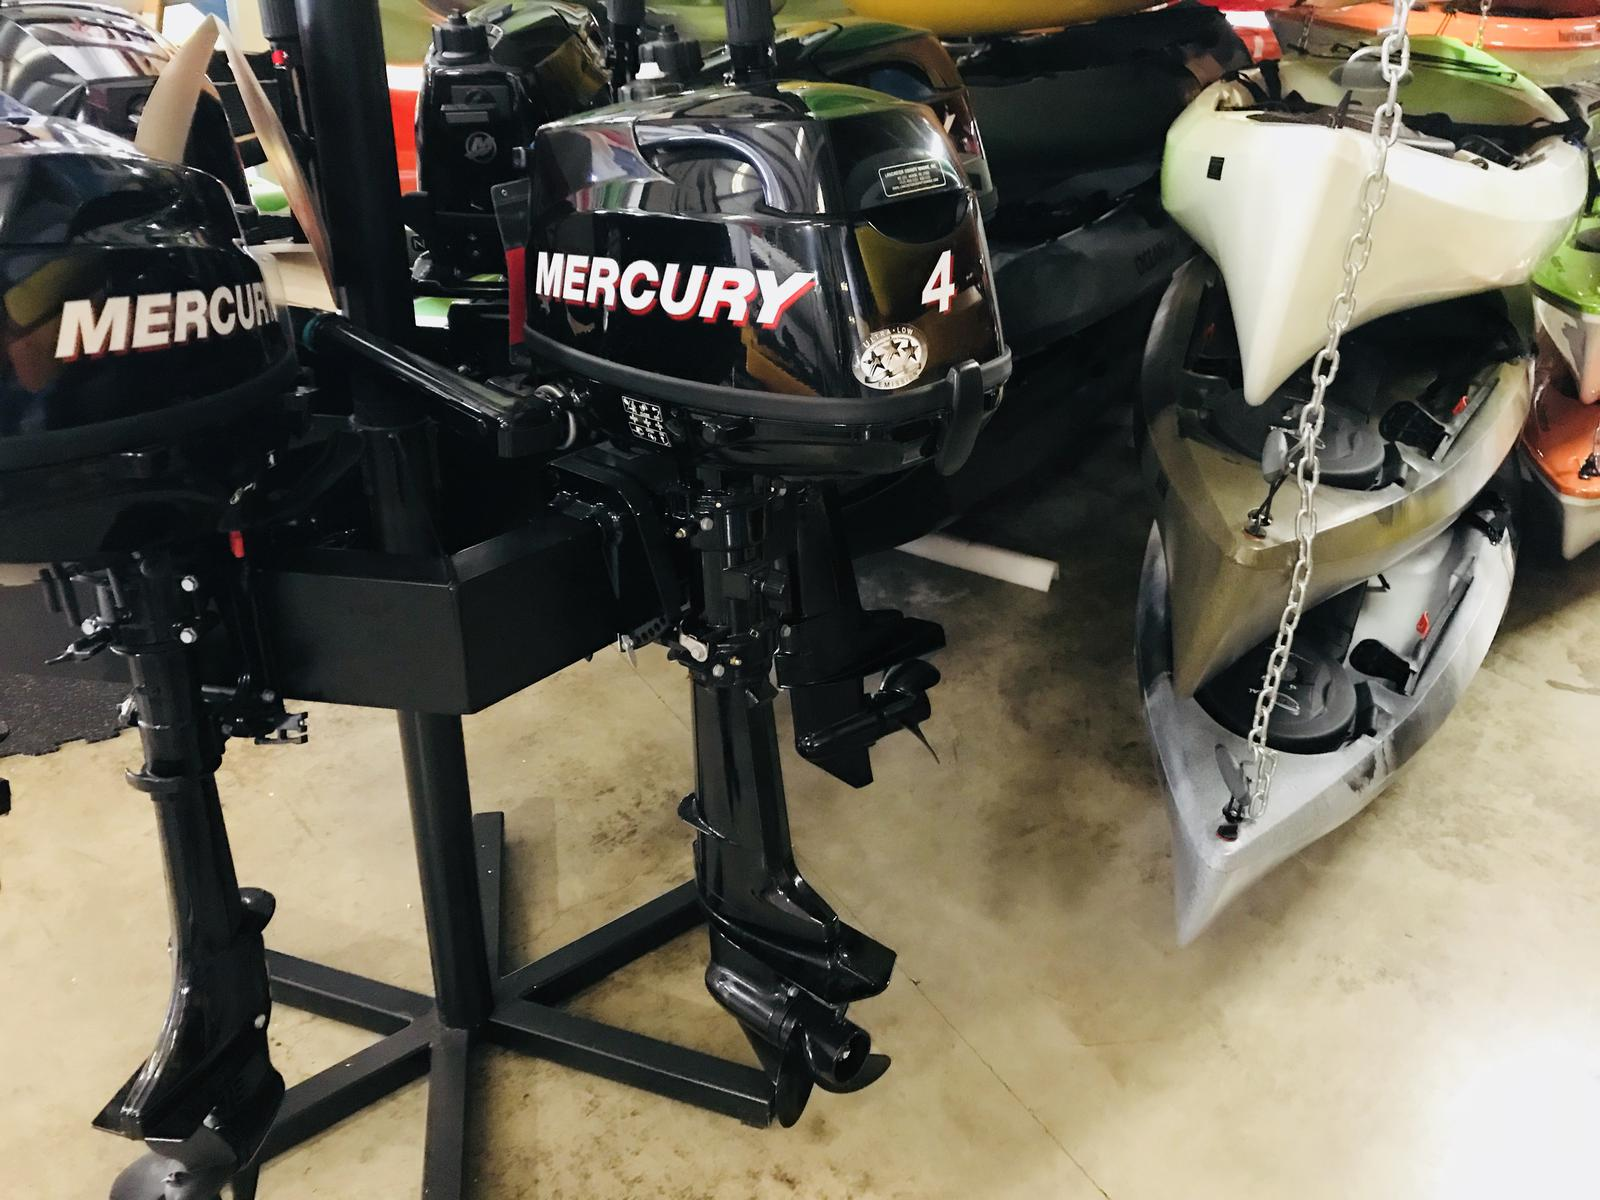 Mercury Marine Engines 4 HP 4-Stroke for sale in Ephrata, PA